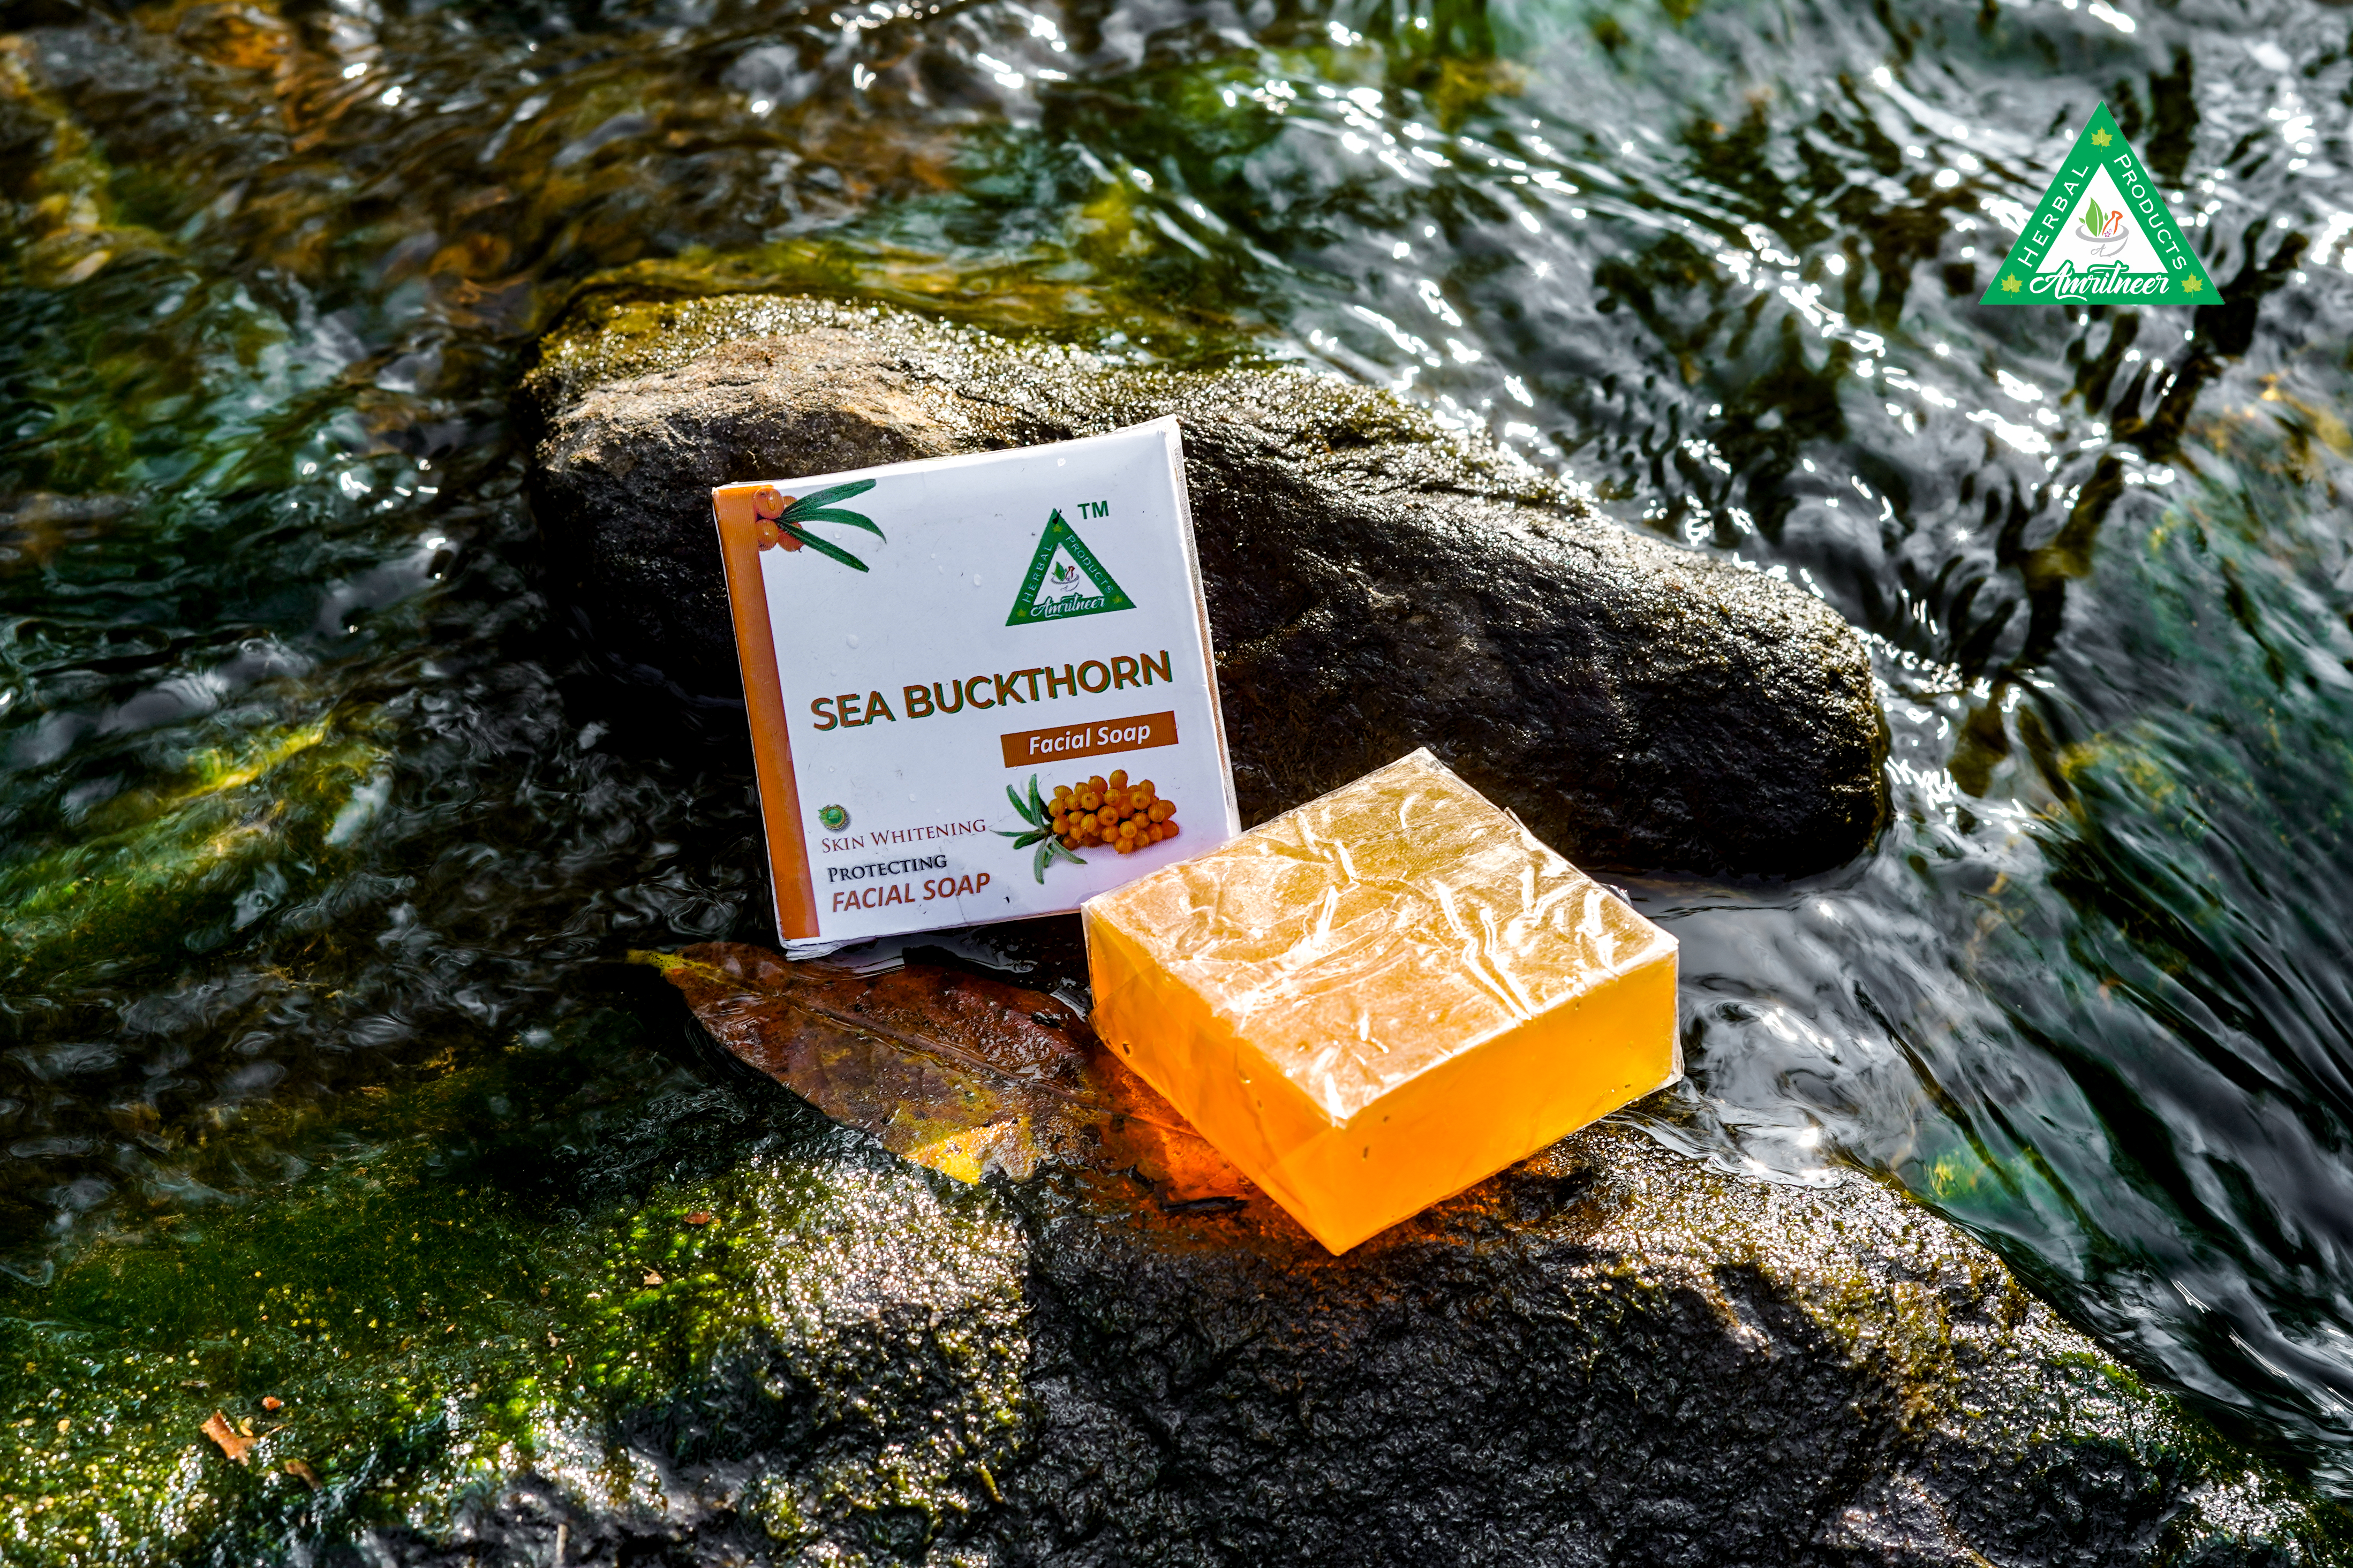 SEA BUCKTHORN FACIAL SOAP